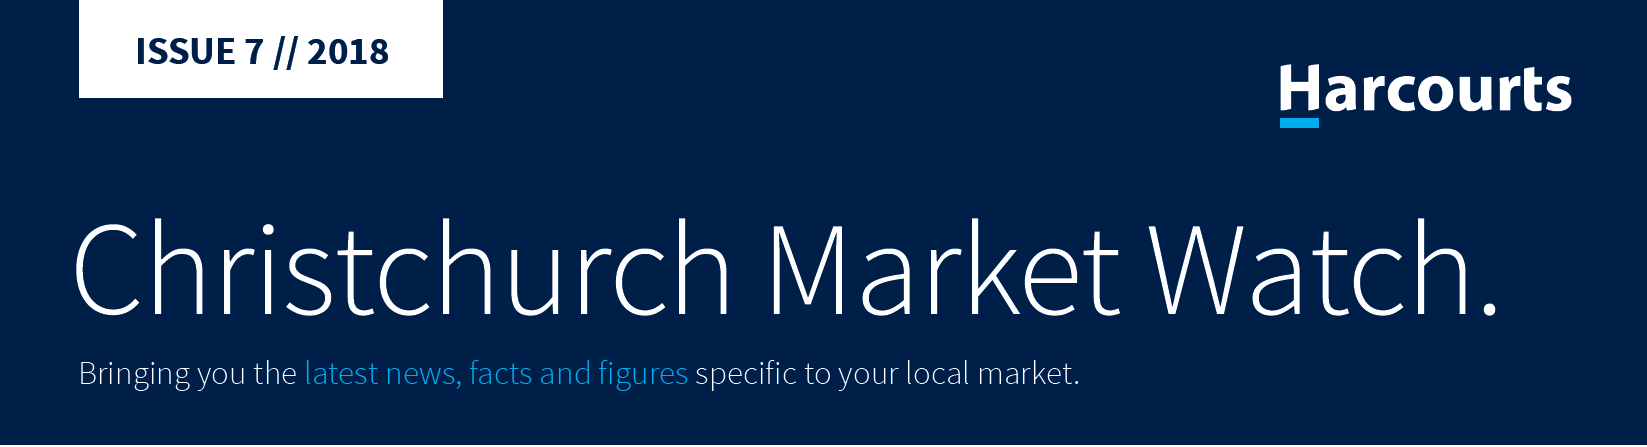 Christchurch Market Watch August 2018